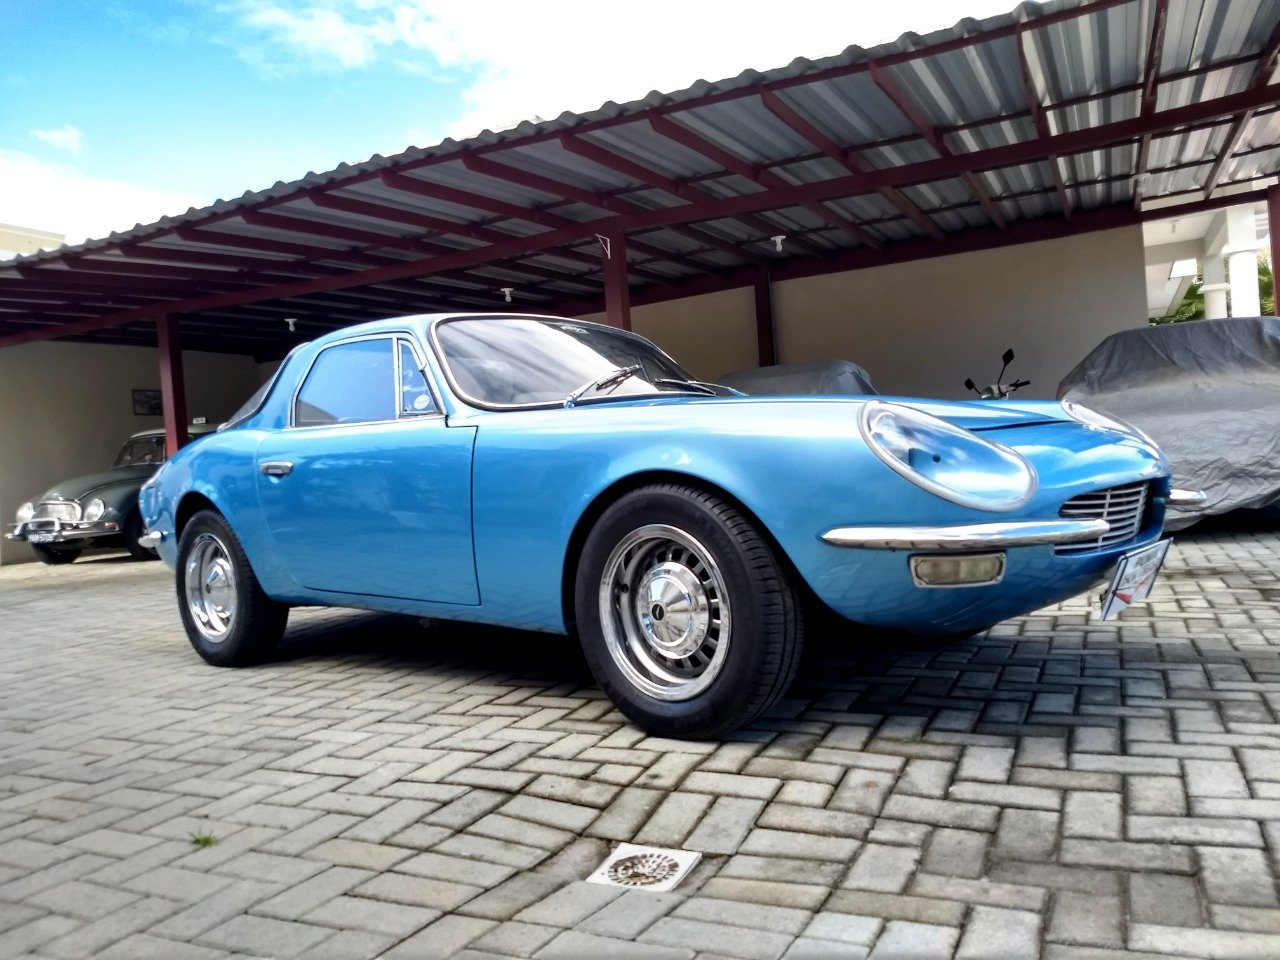 1967 Rare 2 times engine Puma DKW  For Sale (picture 2 of 6)